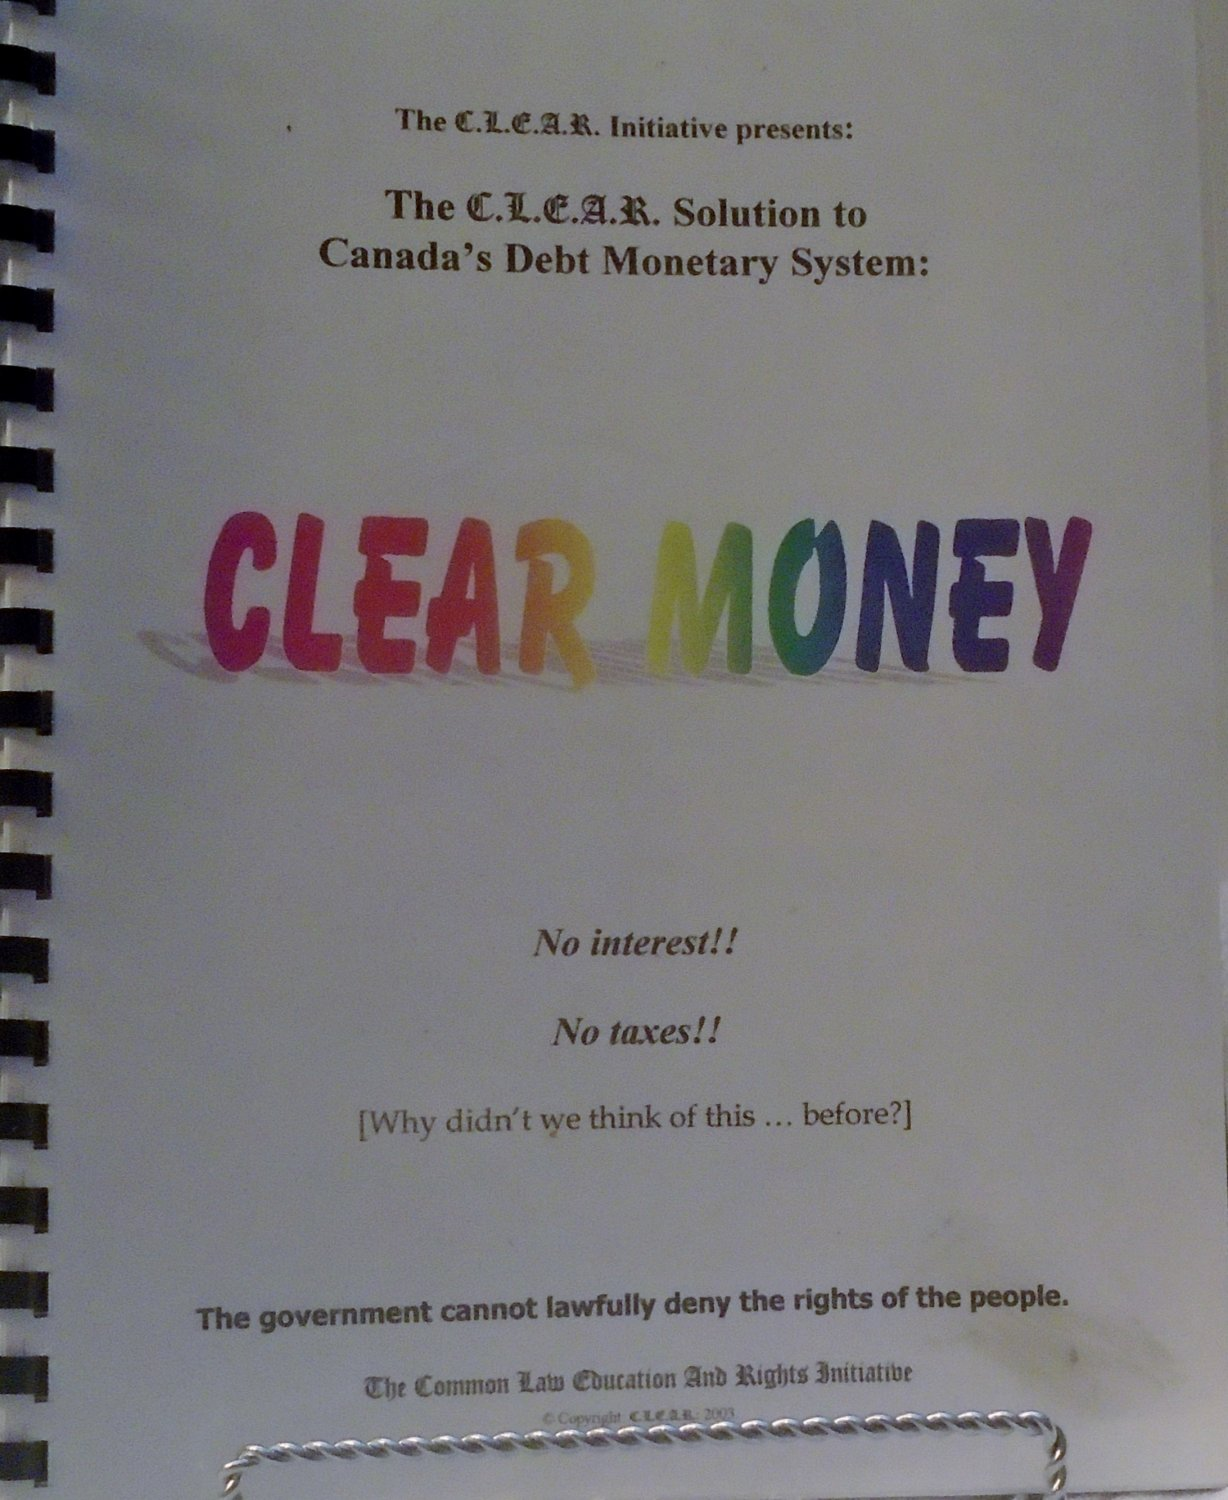 CLEAR MONEY - a solution to the debt monetary system